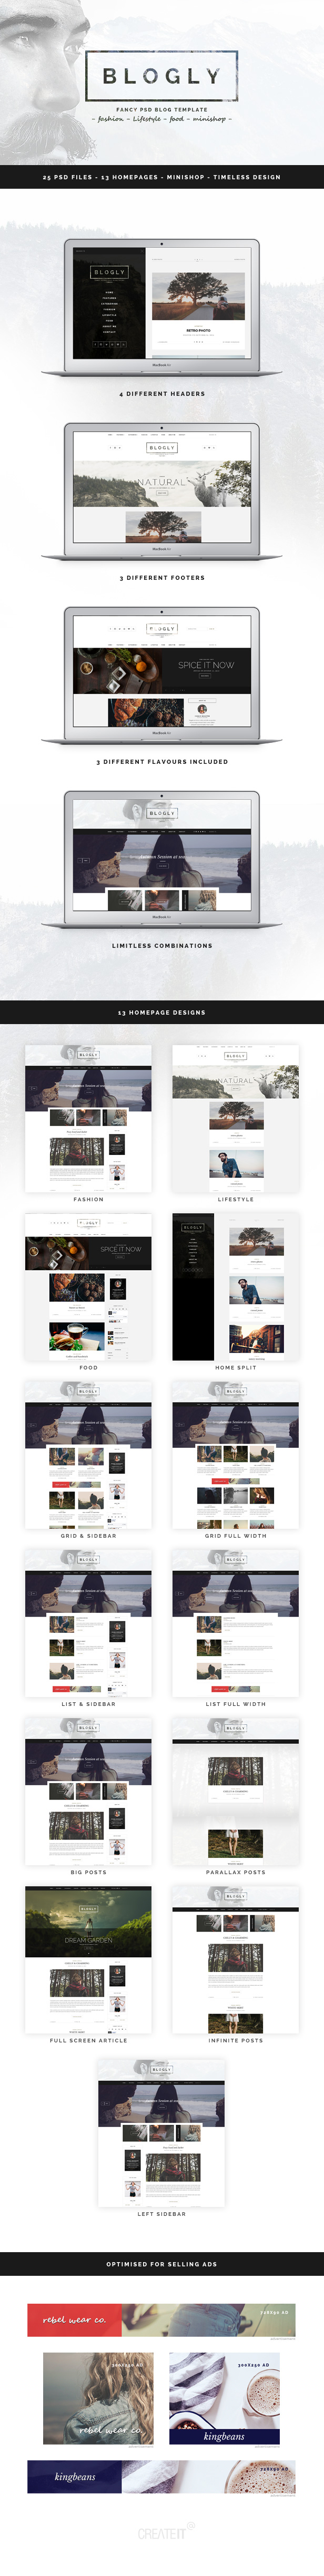 Blogly - Fancy PSD Blog Template